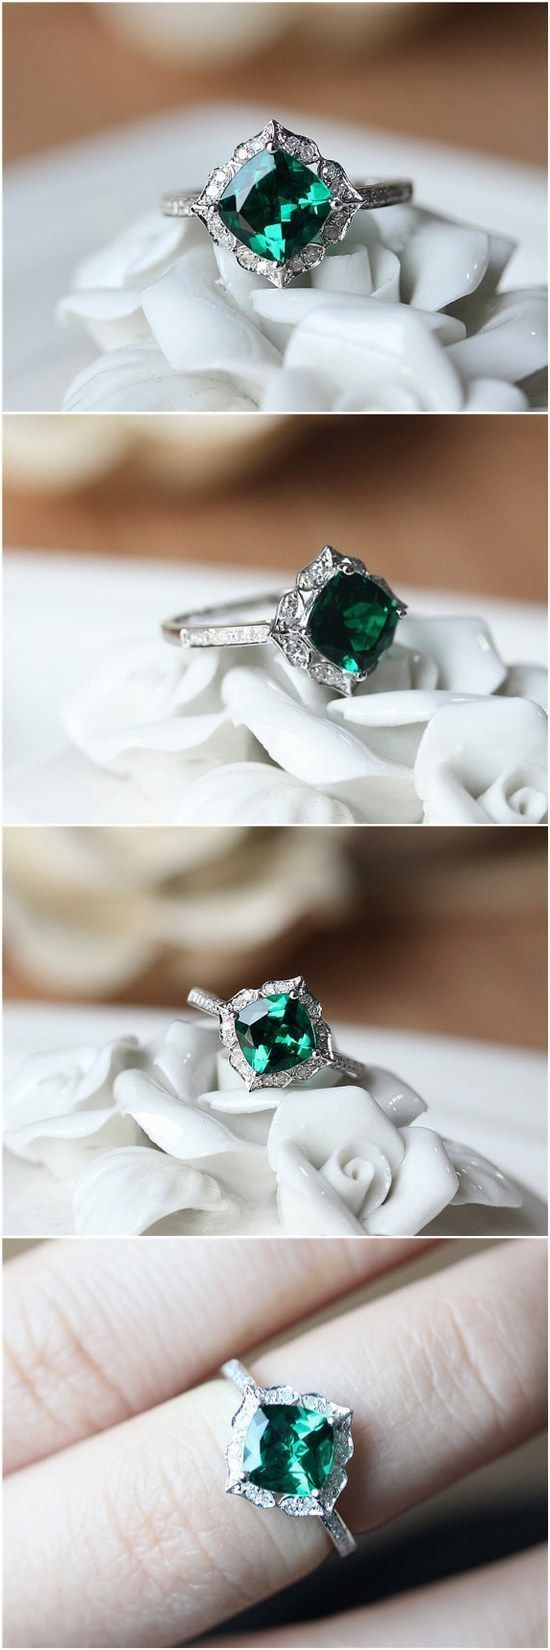 7mm Cushion Cut Emerald Engagement Ring / http://www.deerpearlflowers.com/inexpensive-engagement-rings-under-1000/2/ #WeddingJewelry